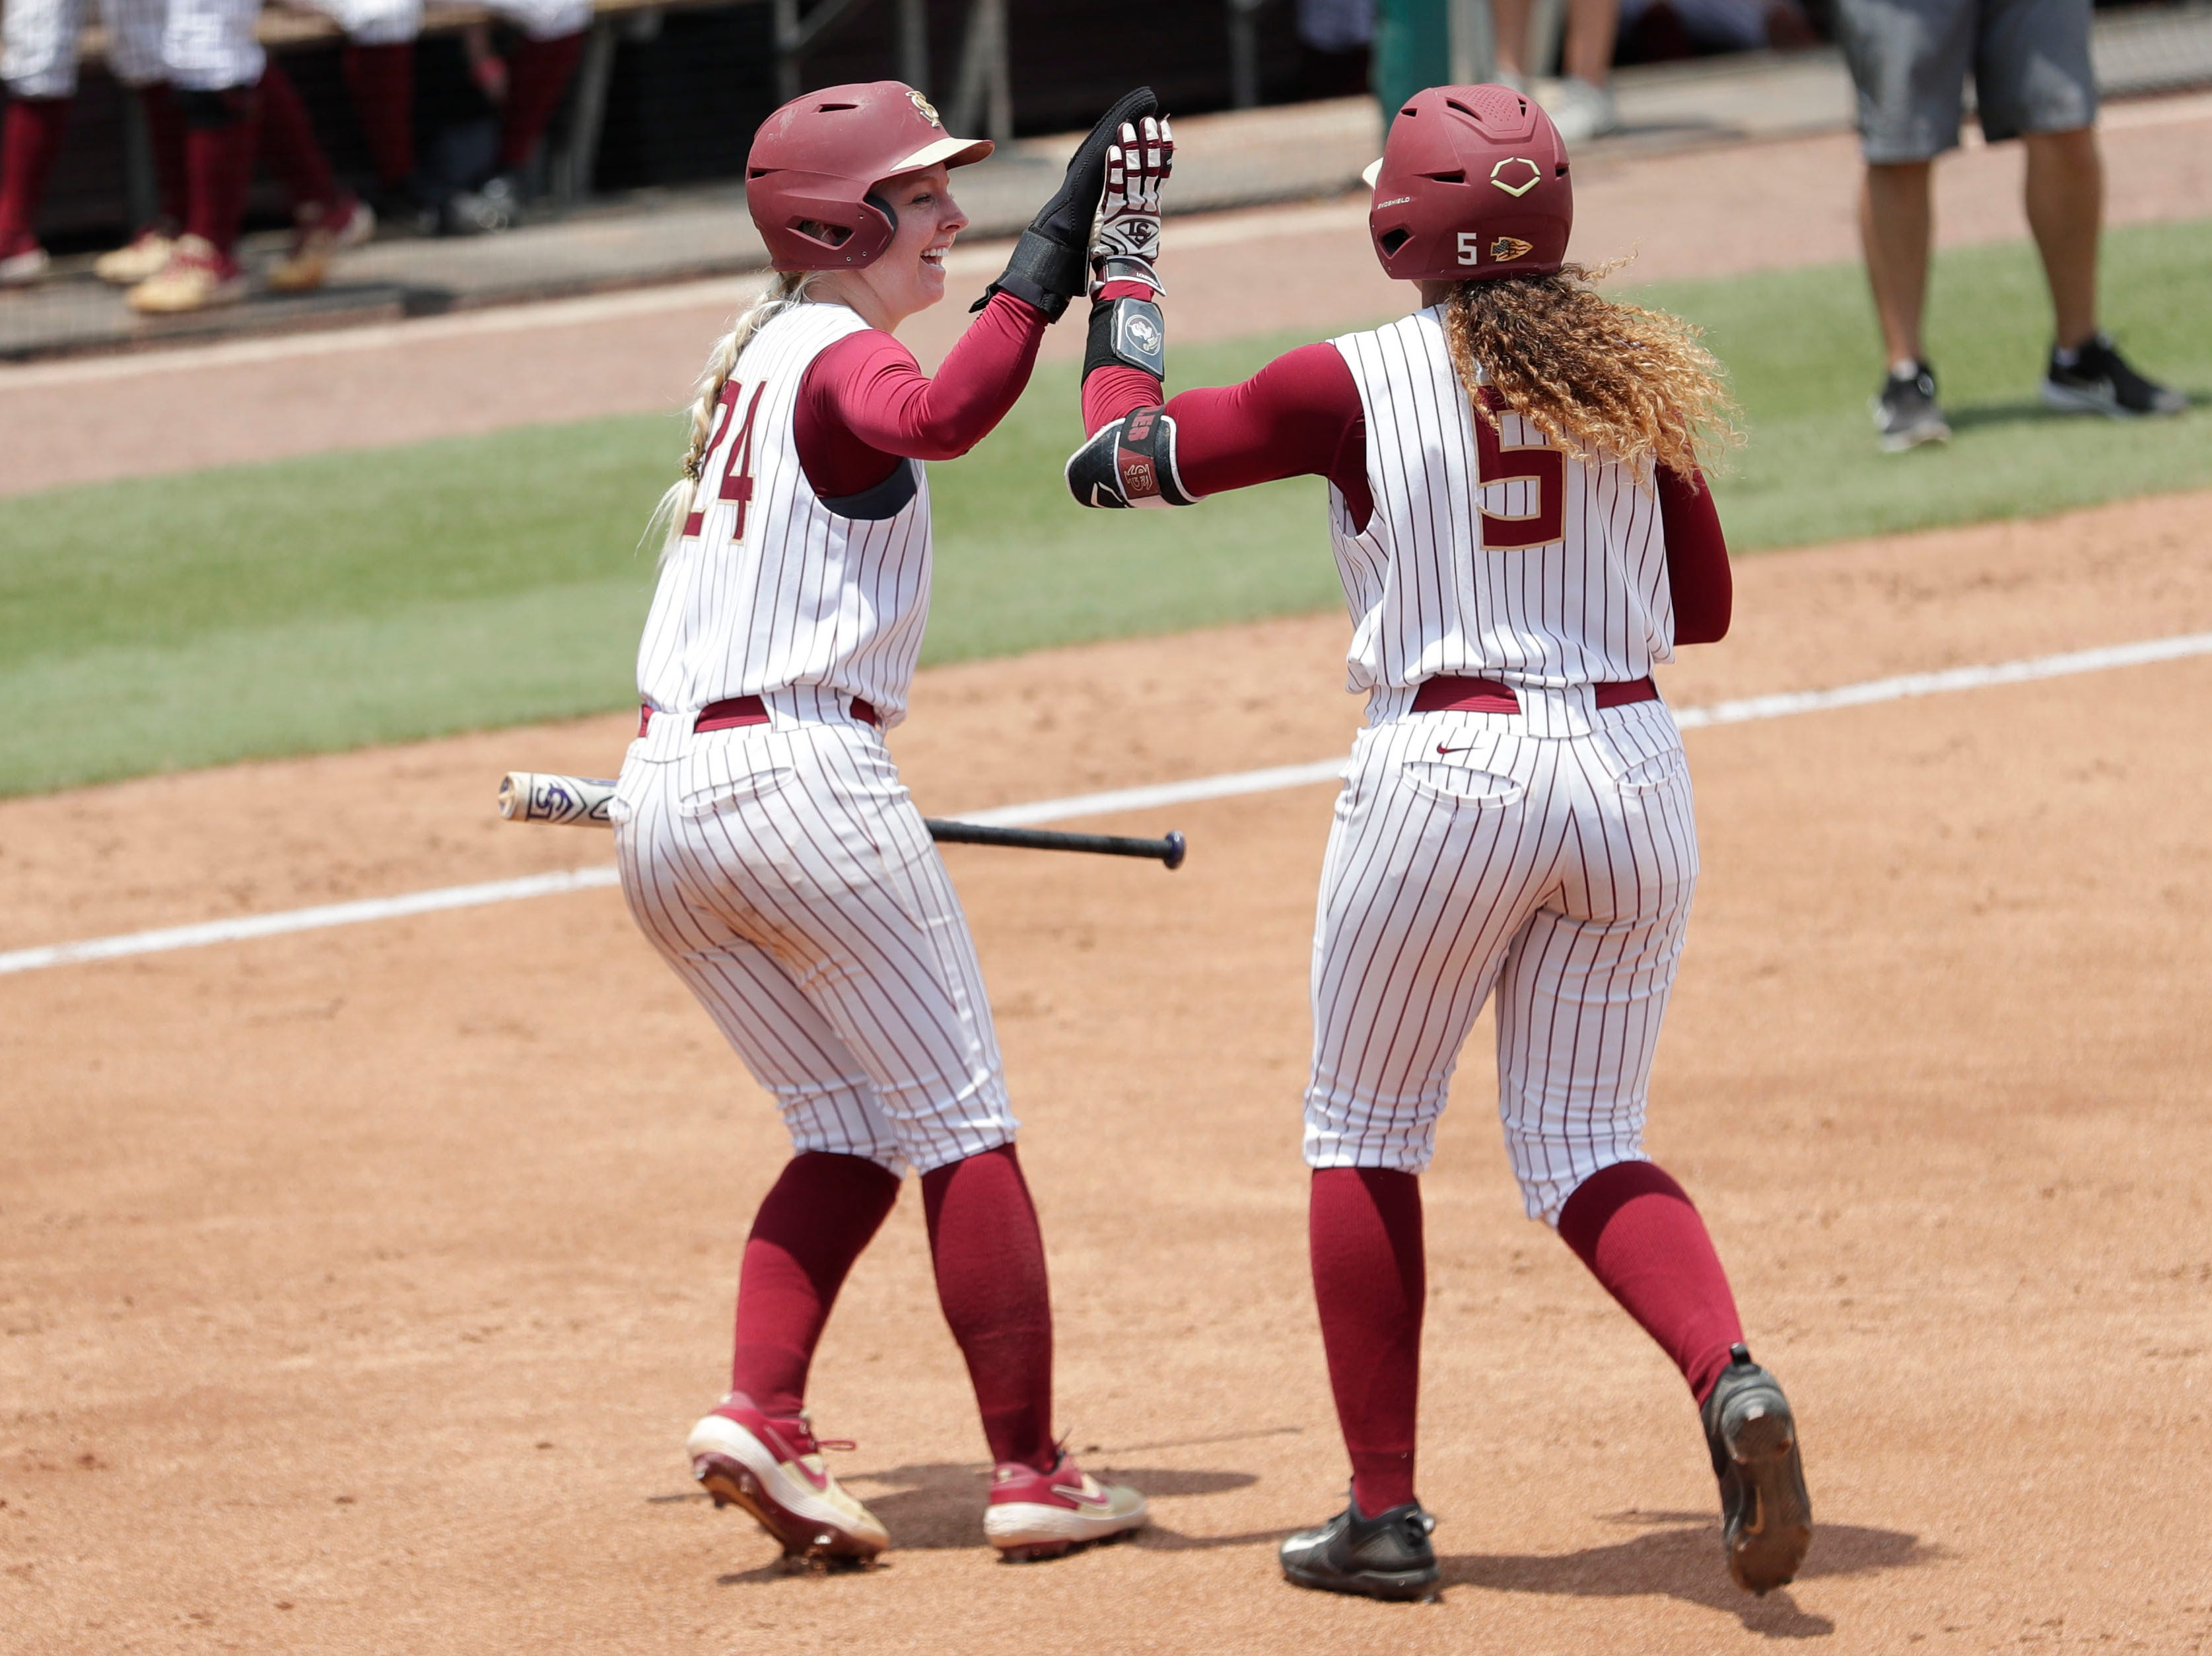 Florida State Seminoles utility player Sydney Sherrill (24) and Florida State Seminoles catcher Elizabeth Mason (5) high five. The Florida State Seminoles host the UNC Tar Heels for the ACC Softball Tournament finals Saturday, May 11, 2019.